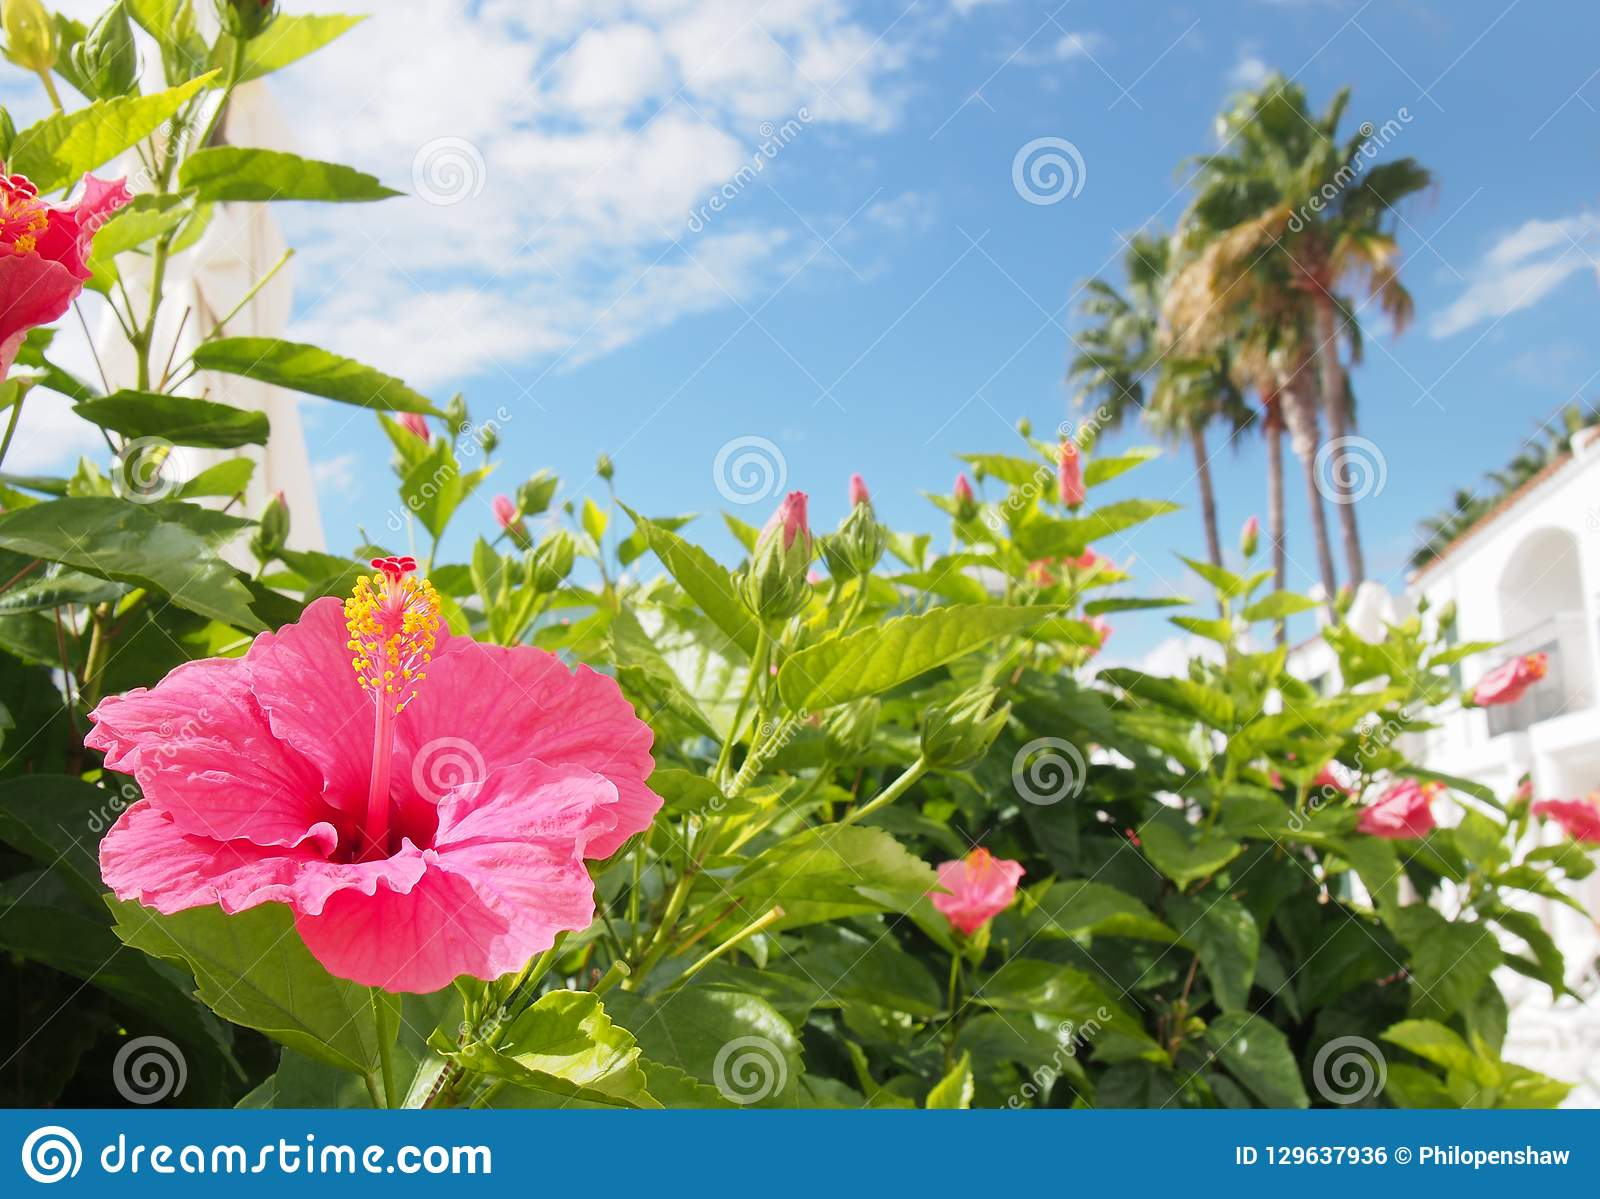 tropical holiday vacation scene with a bright pink hibiscus flower in front of white blurred buildings and palm trees againds a